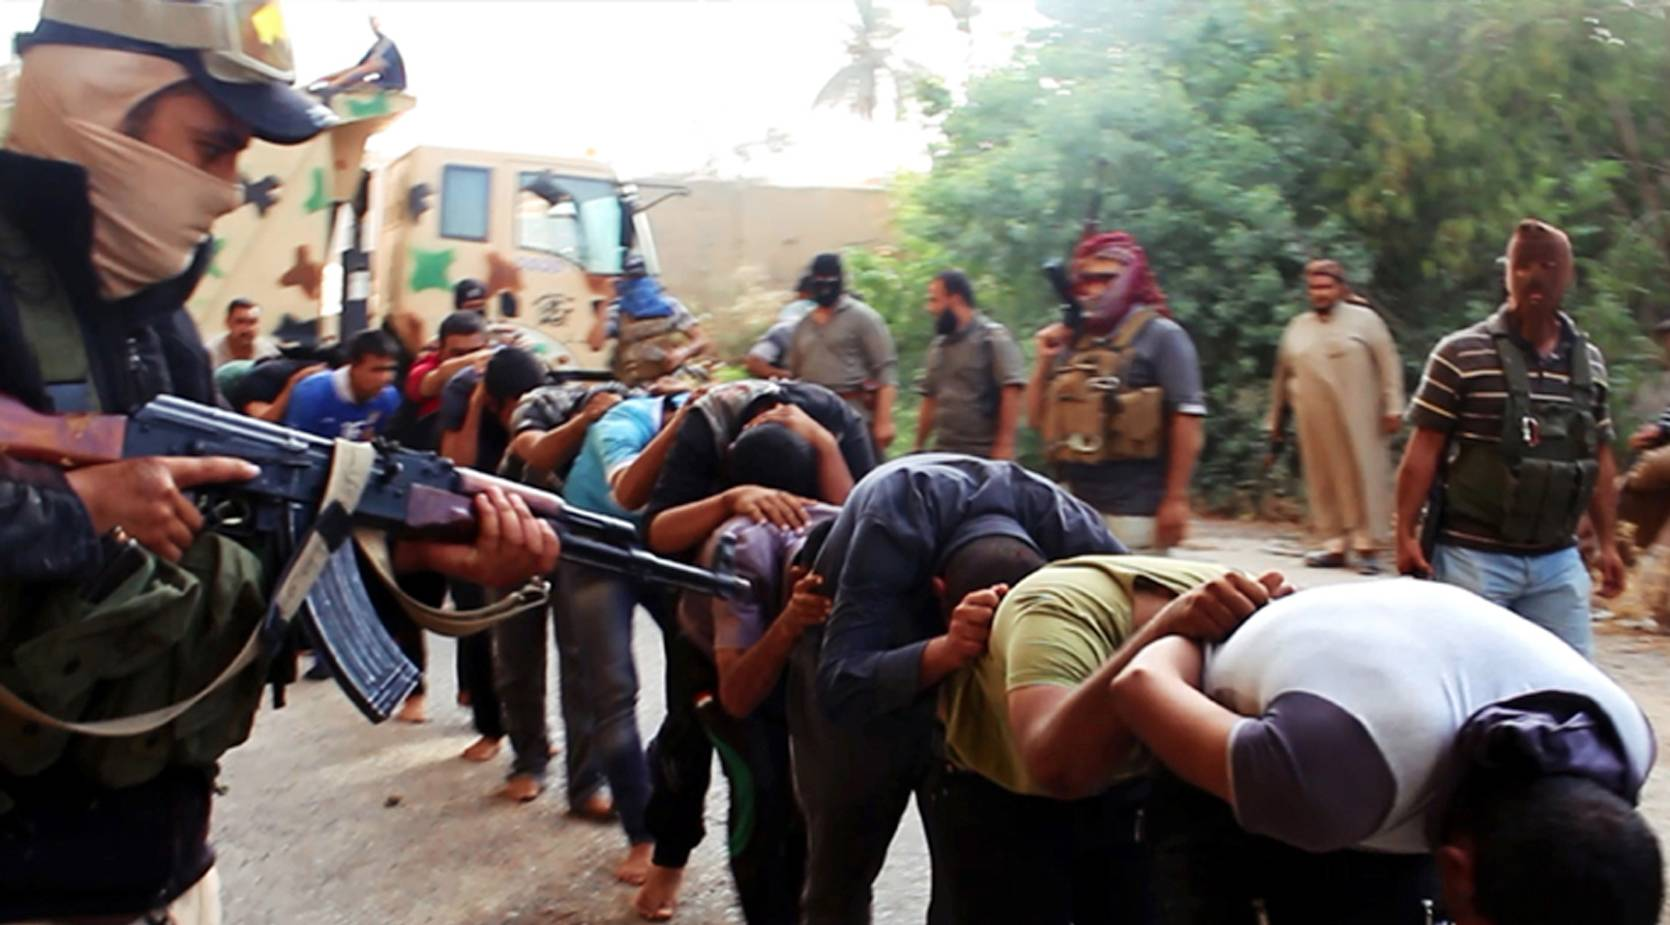 Human Rights Watch, a leading international watchdog, said Wednesday, Sept 3, 2014, new evidence indicates the Islamic State fighters killed between 560 and 770 men captured at Camp Speicher, near the city of Tikrit -- a figure several times higher than what was initially reported.